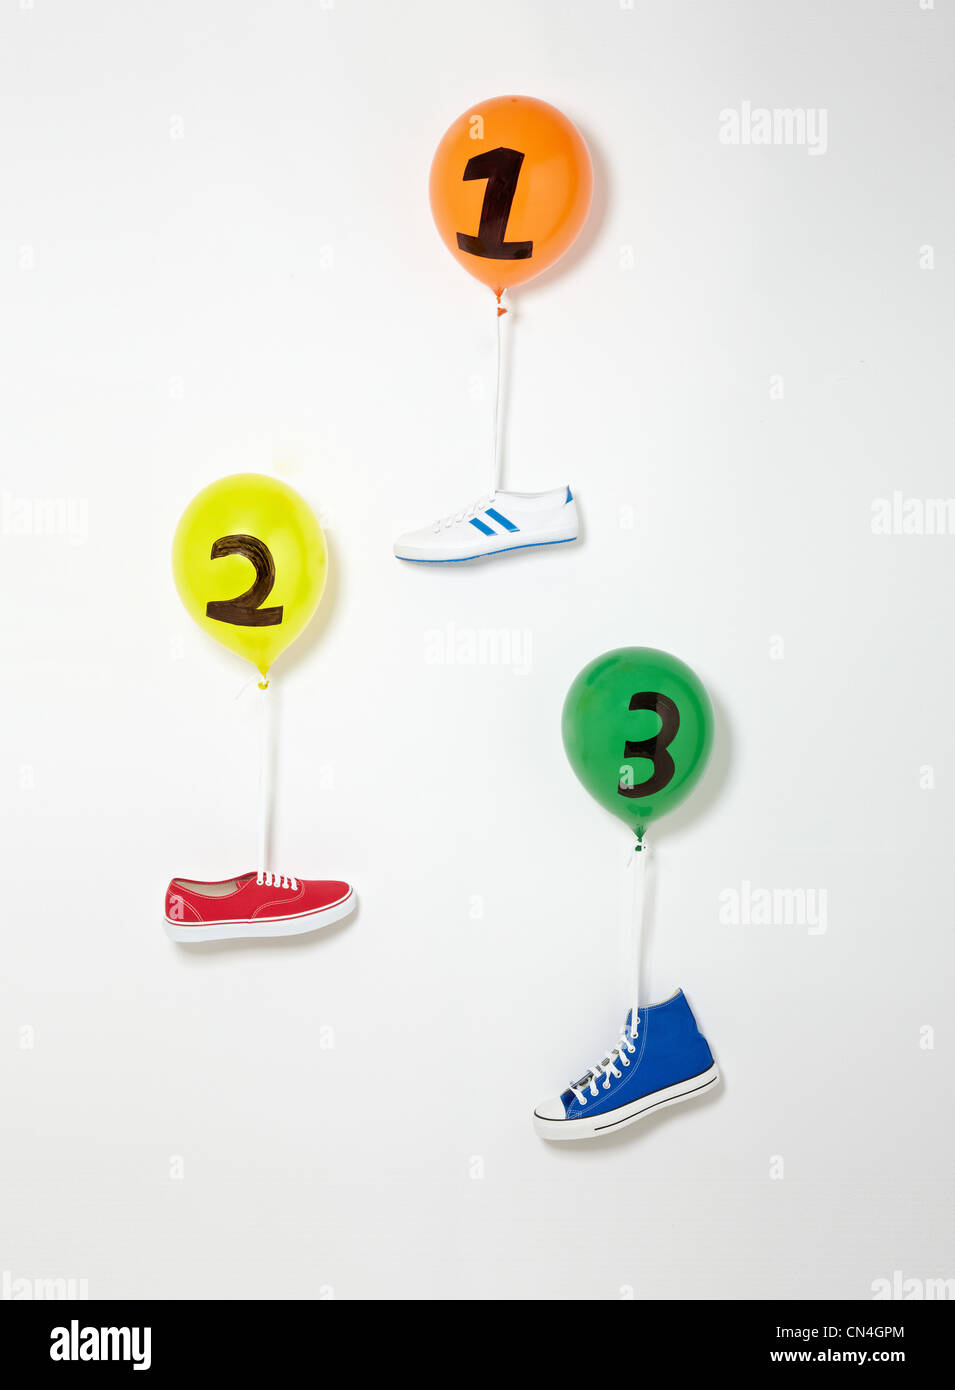 Trainers floating upward suspended by balloons - Stock Image